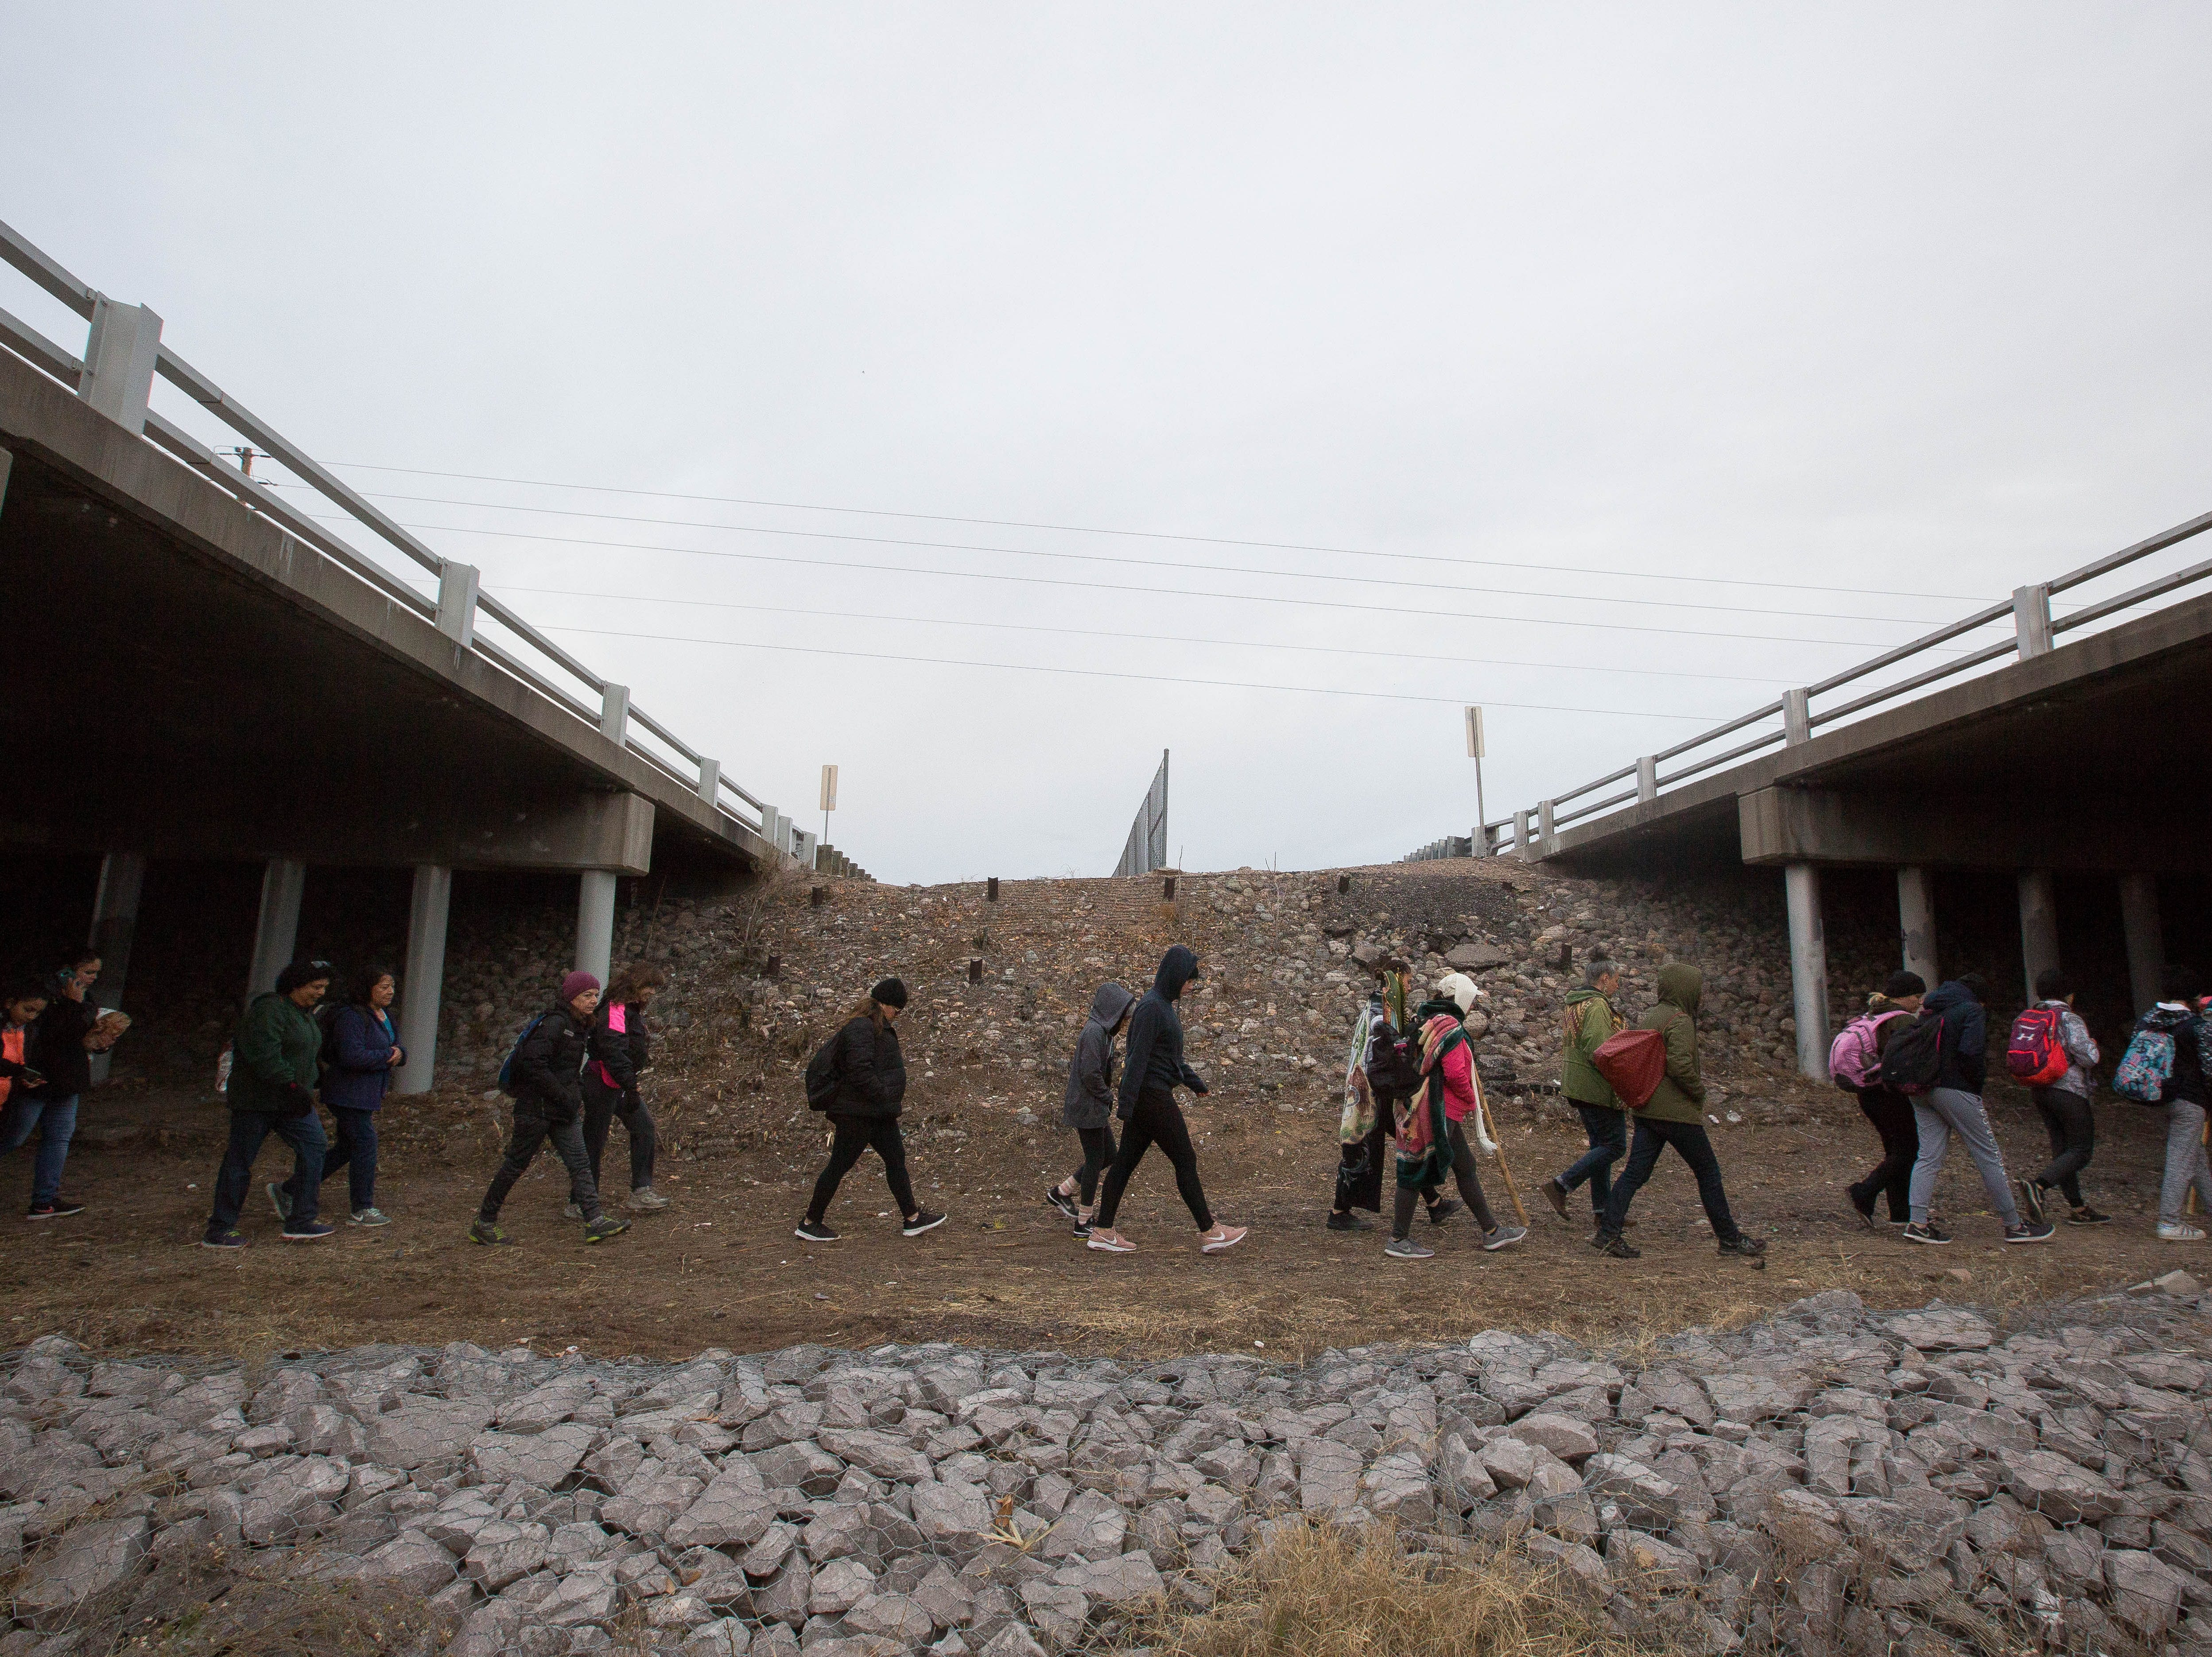 During the second day of the Fiesta of Our Lady of Guadalupe,  a pilgrimage is made from the Tortugas Pueblo to Tortugas Mountain and the route goes under Interstate 25 on Tuesday Dec. 11, 2018. Pilgrims left from the Pueblo at 7 a.m.